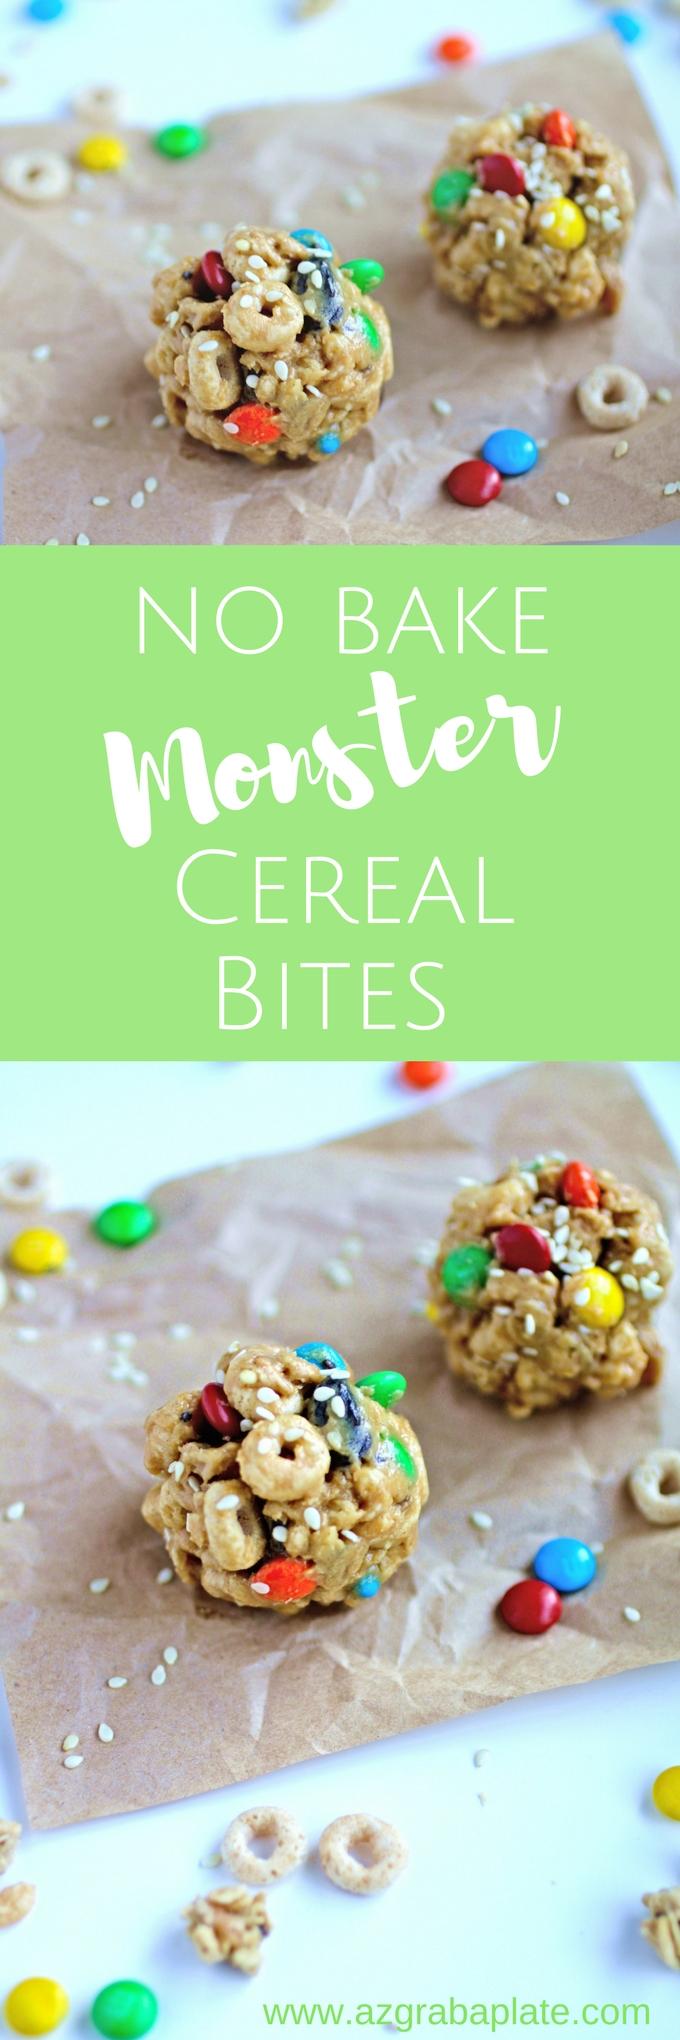 No-Bake Monster Cereal Bites are such a fun treat! You might even have all the ingredients on hand - what a fun snack!